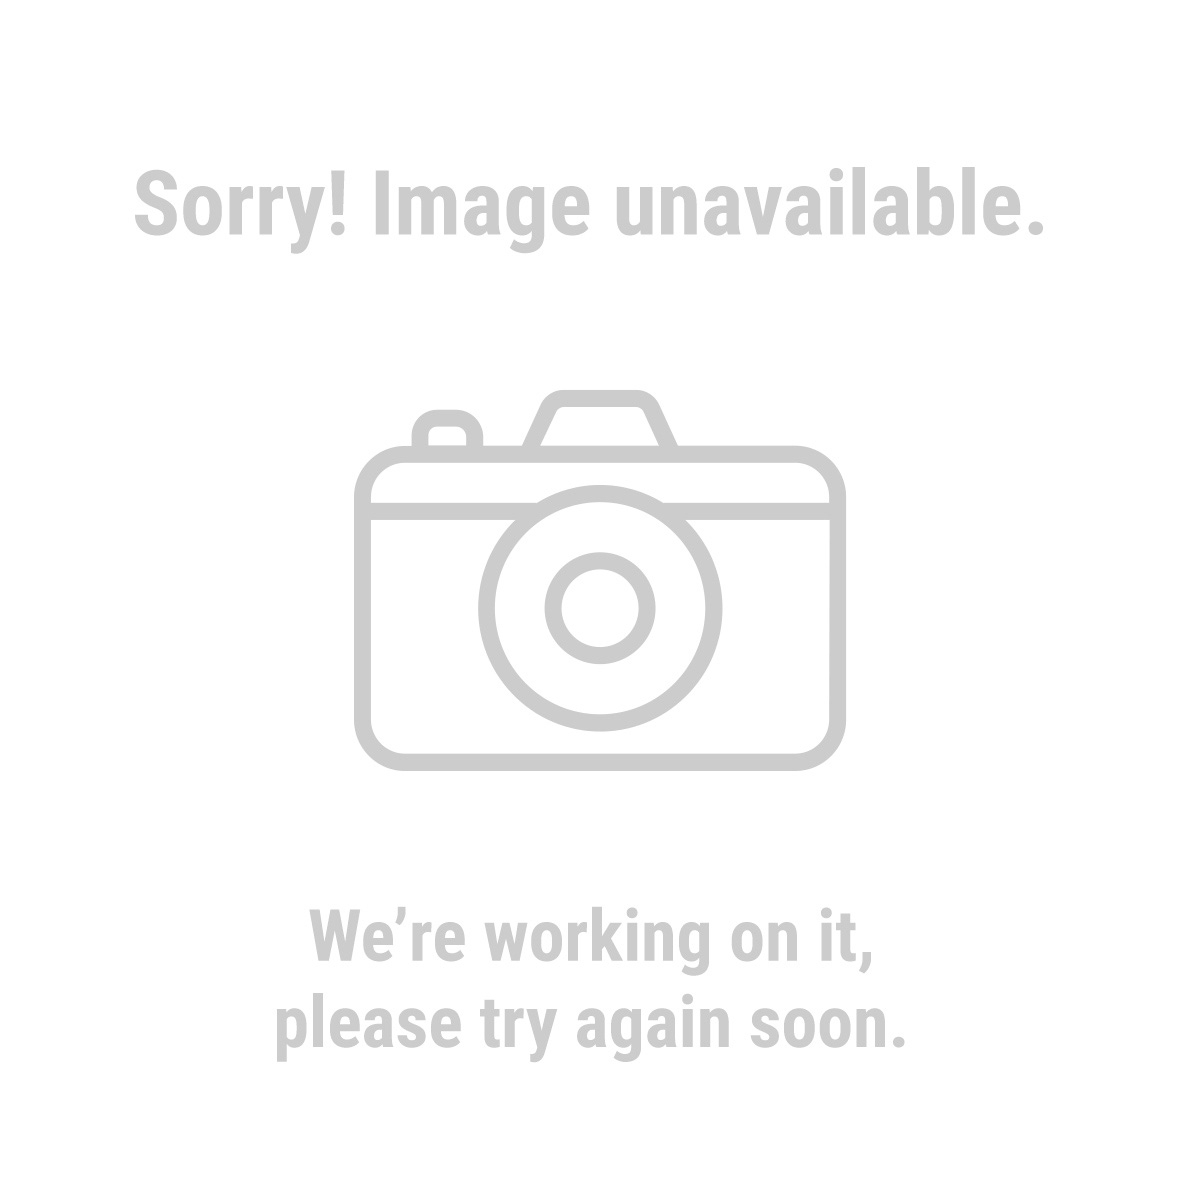 Haul-Master 98933 12 Piece Amber Running Board Light Kit